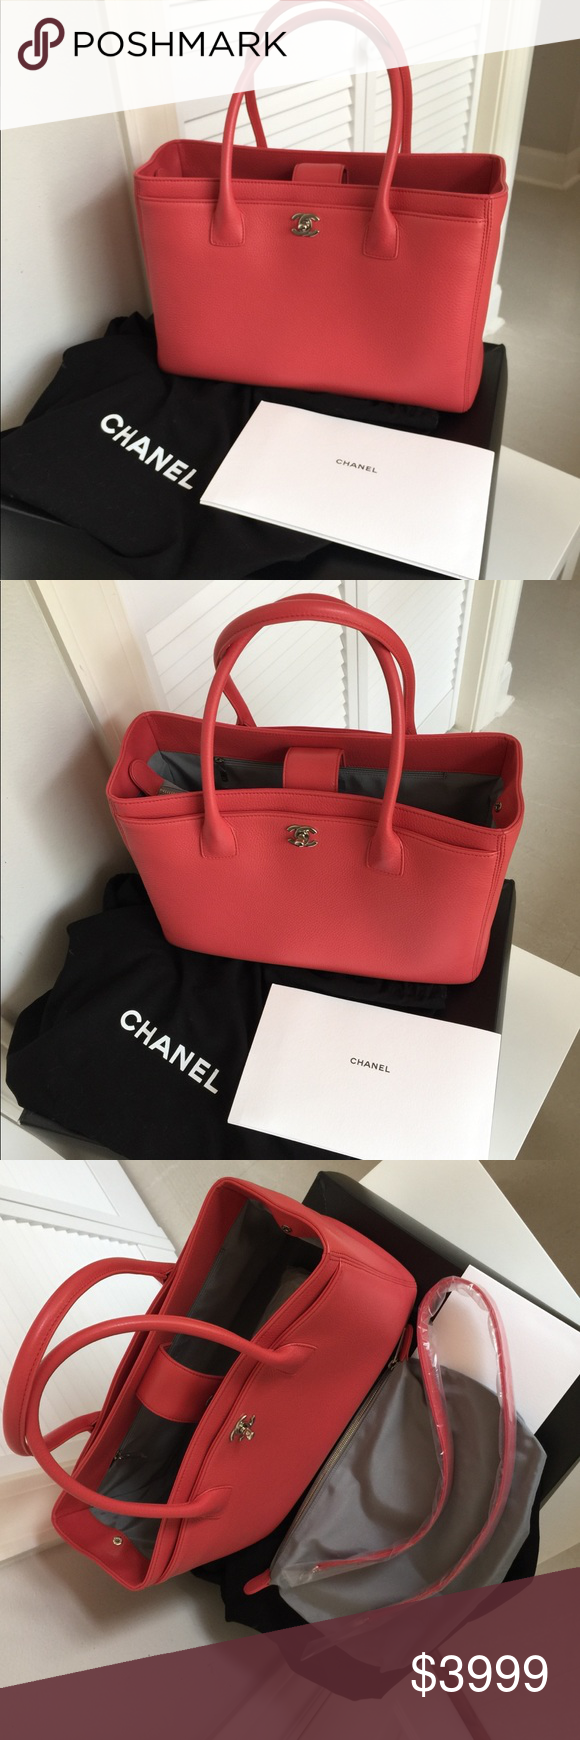 e2a965cf74 CHANEL Large Executive Cerf Grand Shopping Tote Only carried once, like  new. 100%